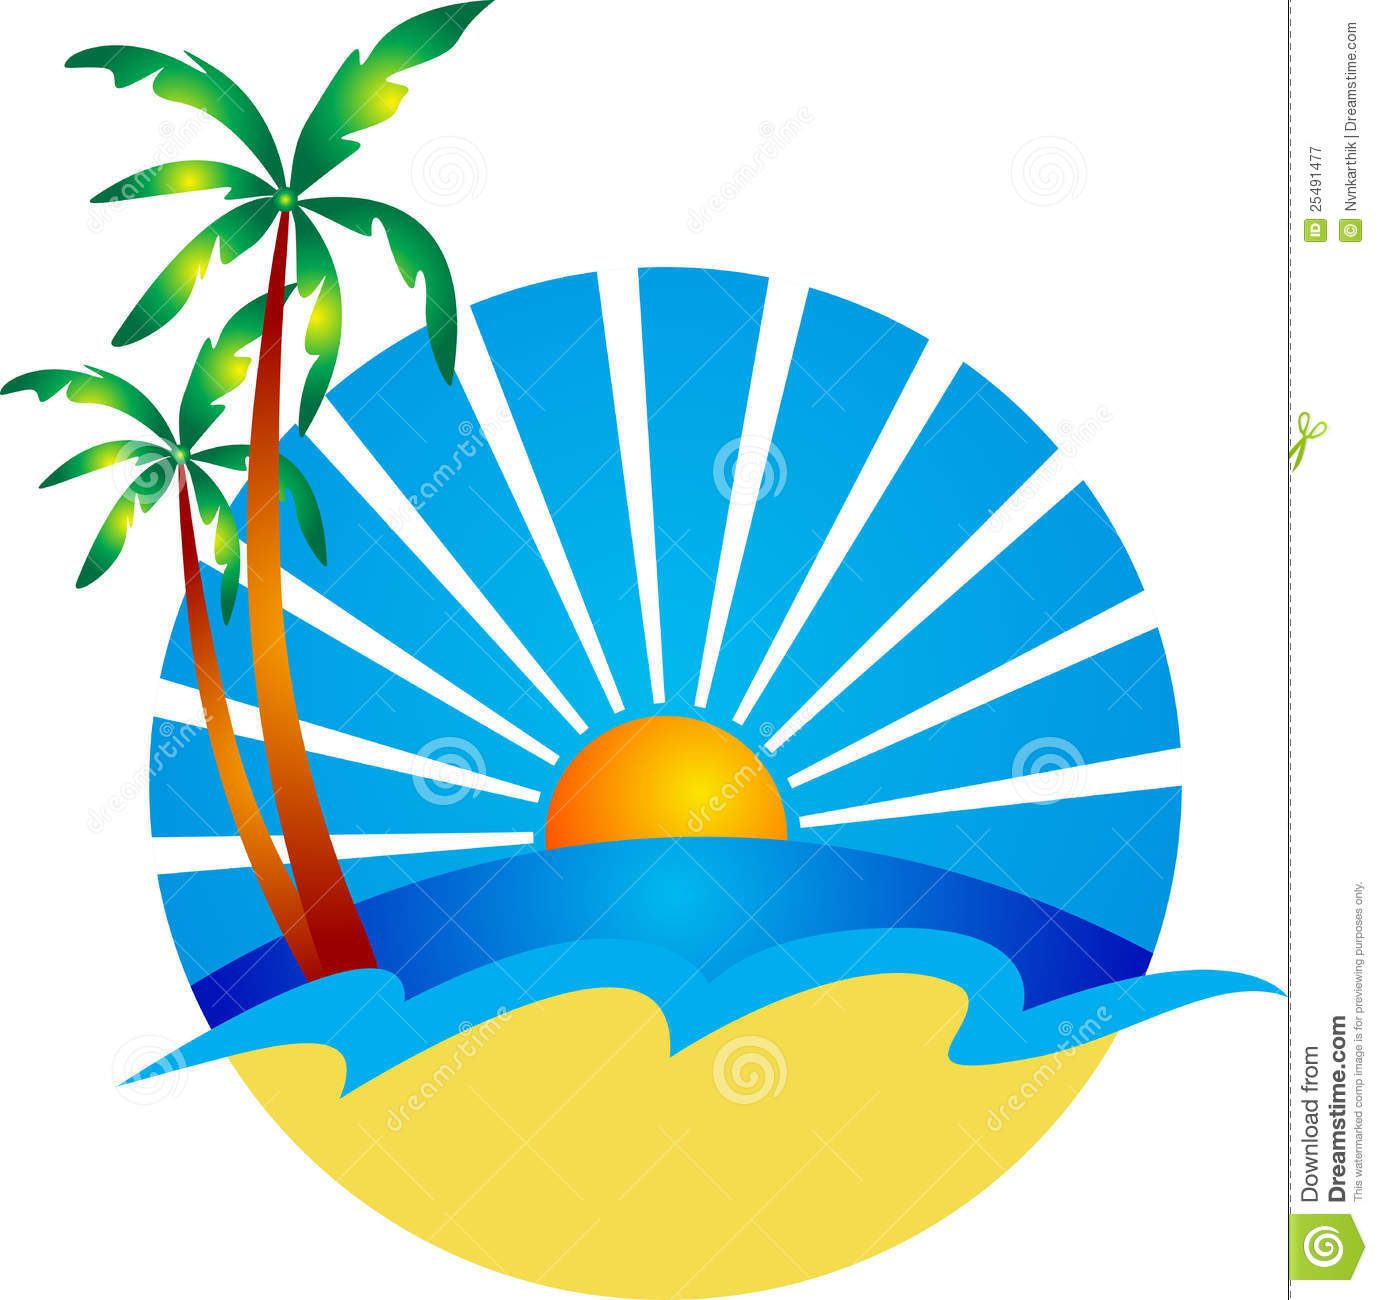 beach logo 25491477 jpg 1378 1300 vcd unit 4 pinterest rh pinterest com Clip Art School Yearbook Free Memorial Clip Art